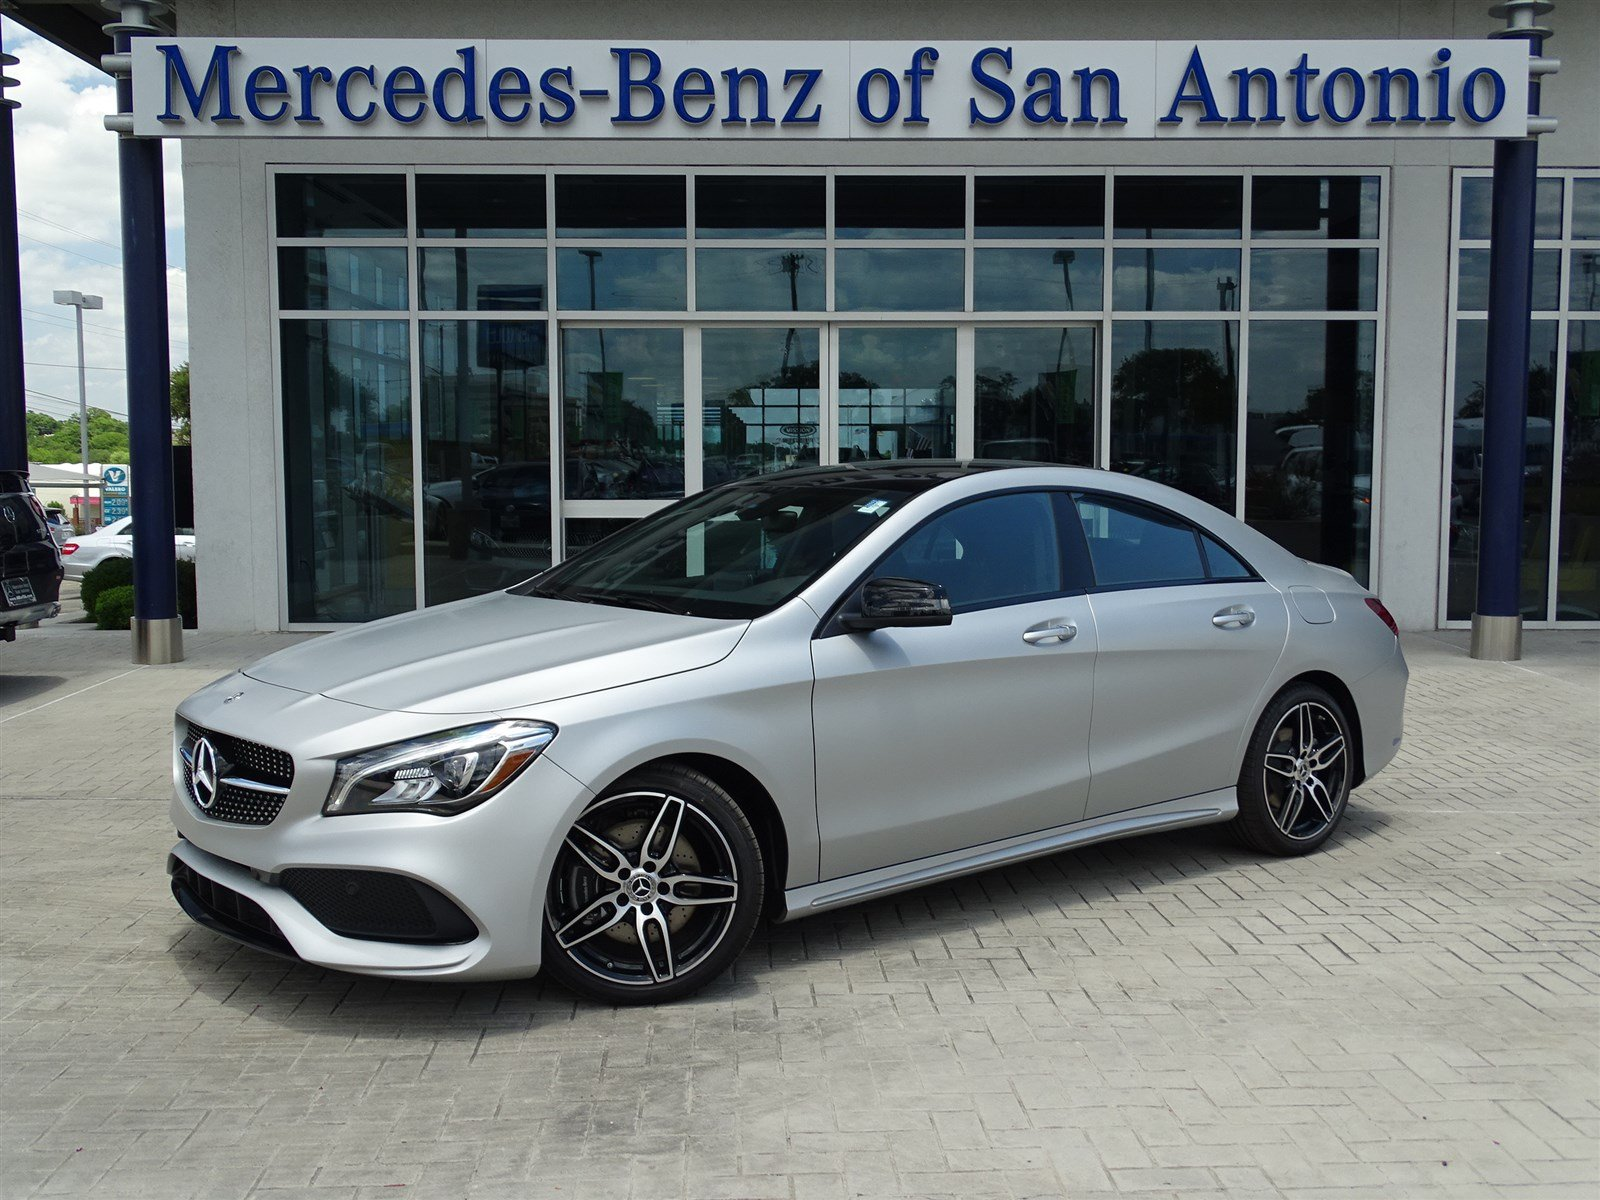 New 2018 MercedesBenz CLA CLA 250 Coupe in San Antonio N15969